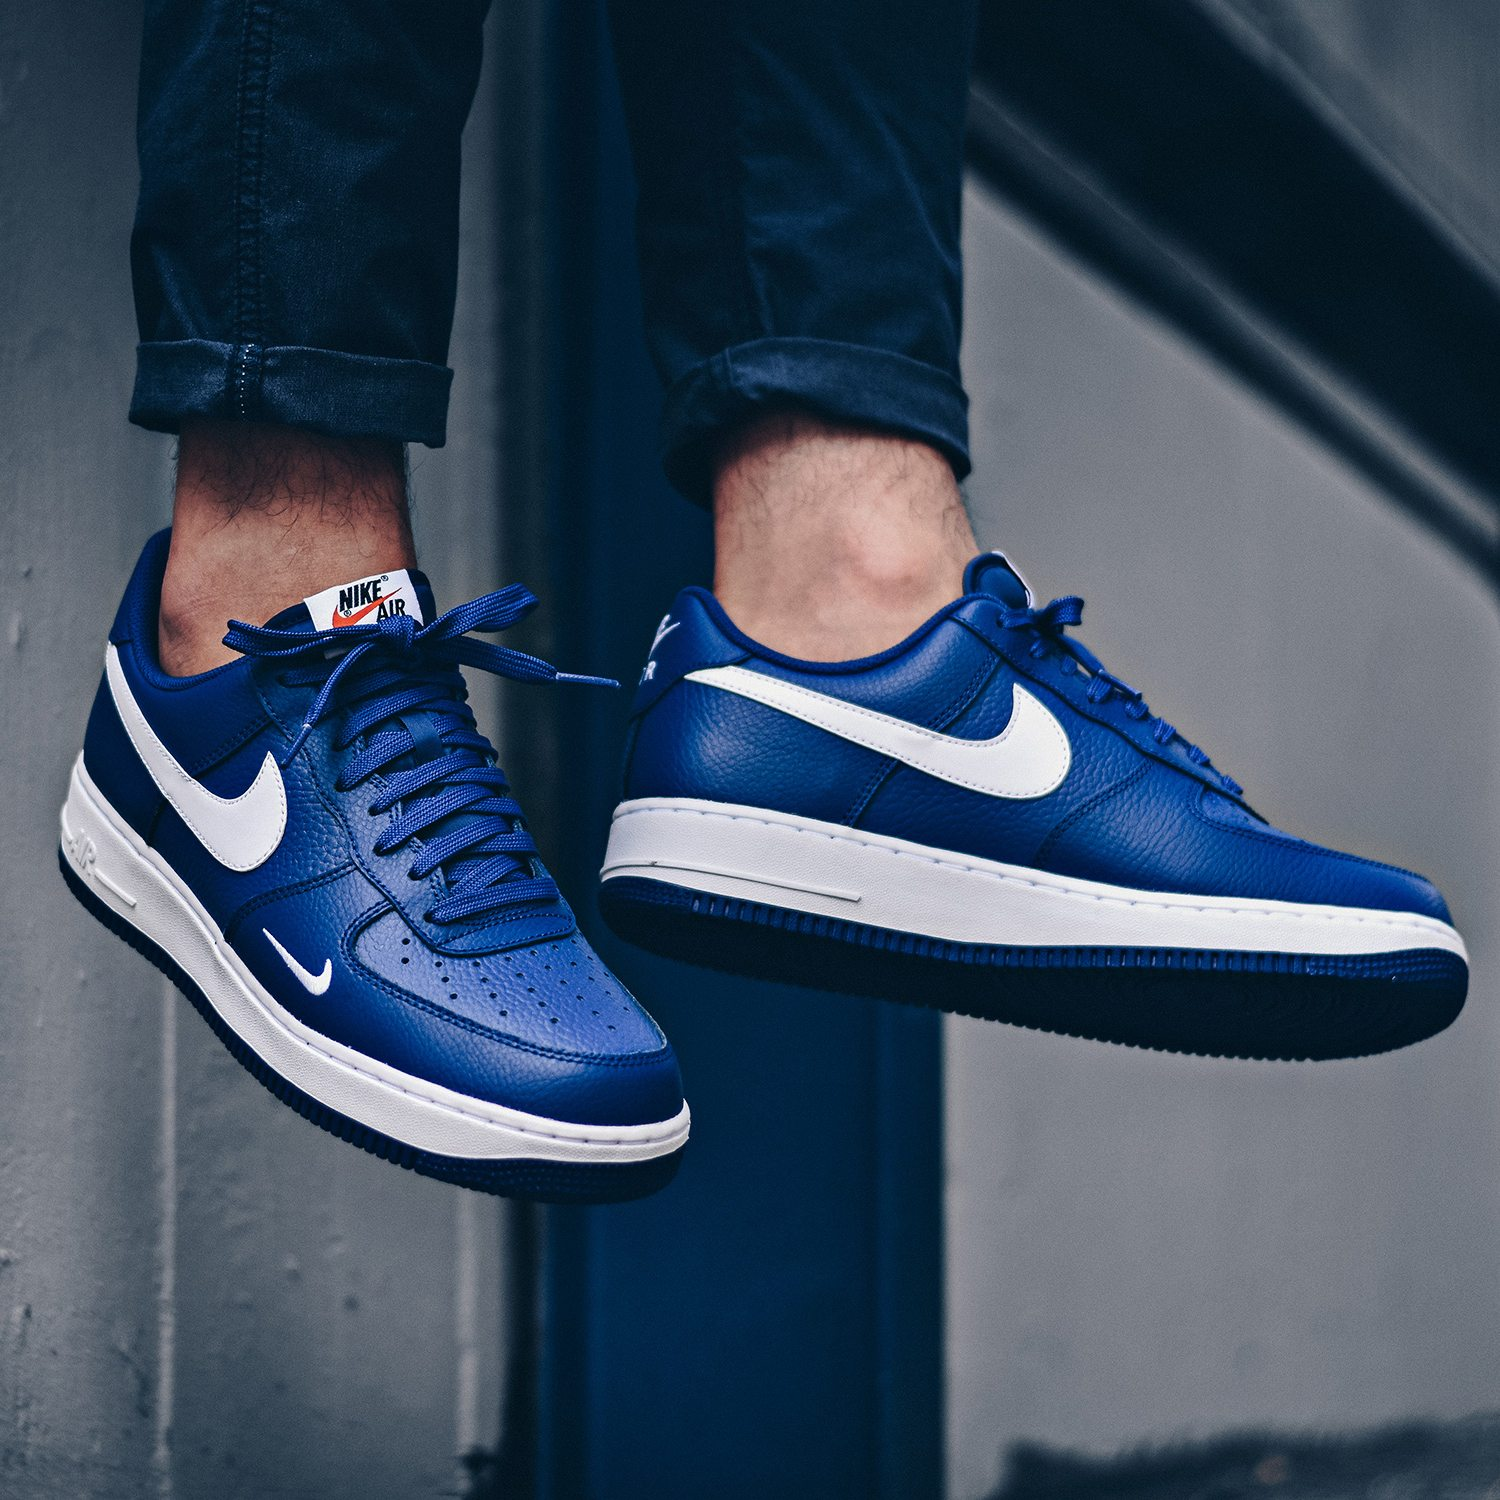 Air Force 1 Mini Swoosh Deep Royal Blue Available Now